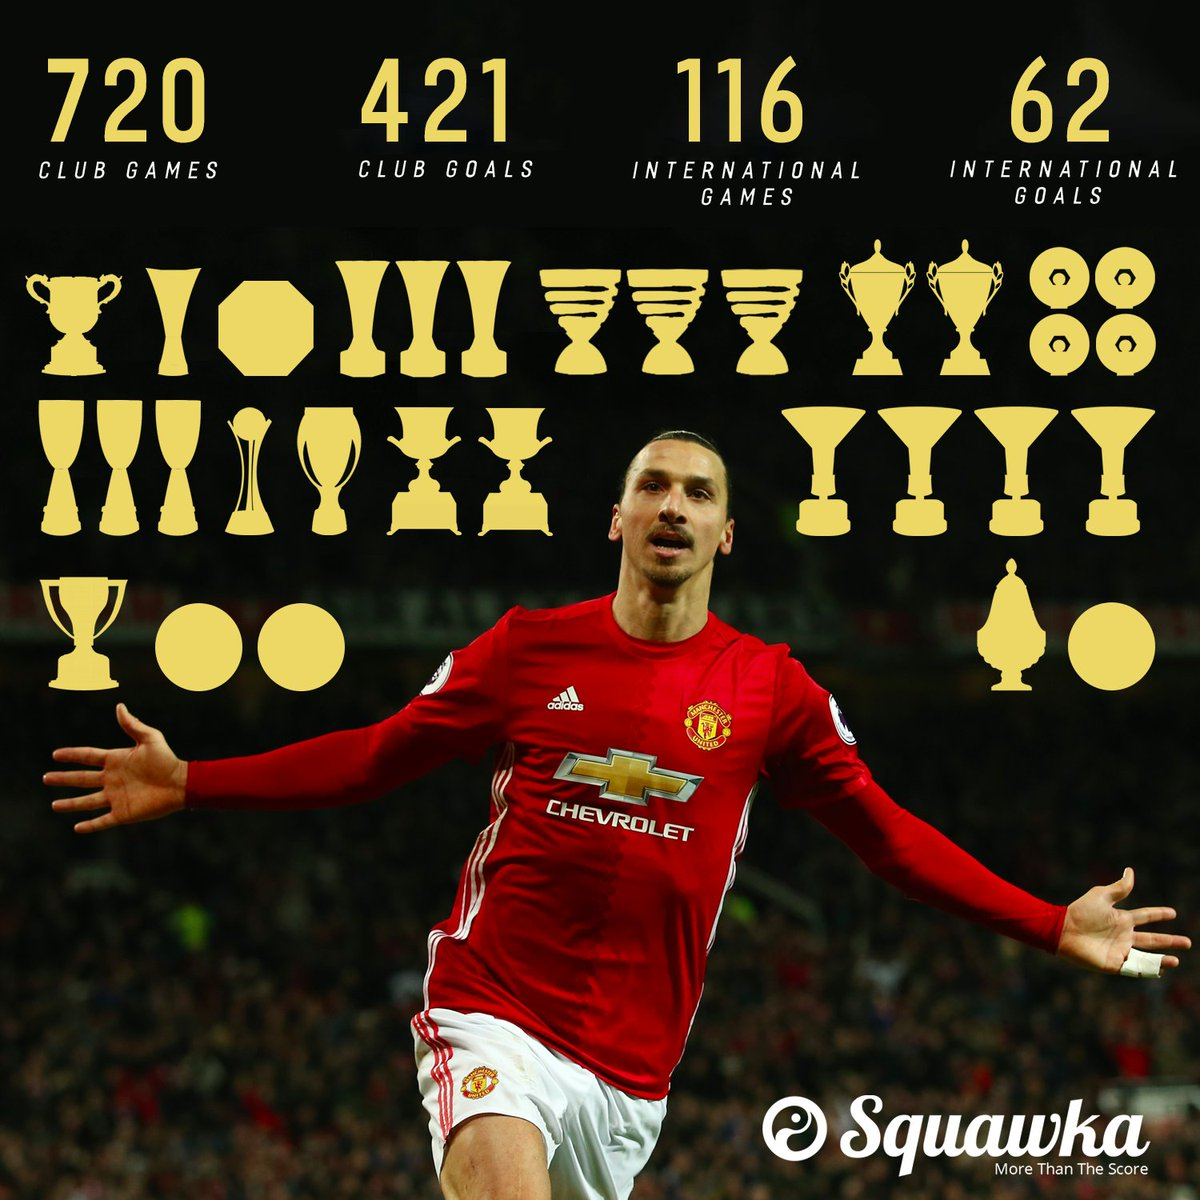 Squawka Football On Twitter Zlatan Ibrahimovic S Career So Far 730 Games 421 Goals 116 Caps 31 Trophies The Next Chapter Awaits